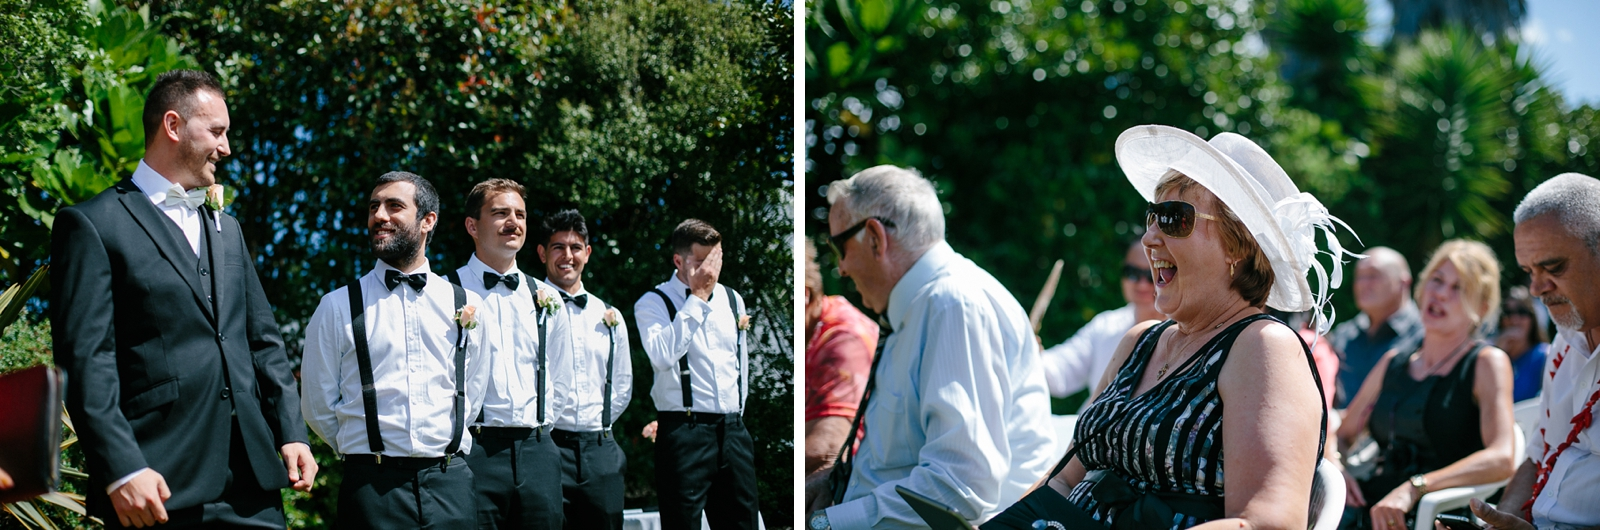 ConnorLaura_Auckland Wedding Photographer_Patty Lagera_0047.jpg